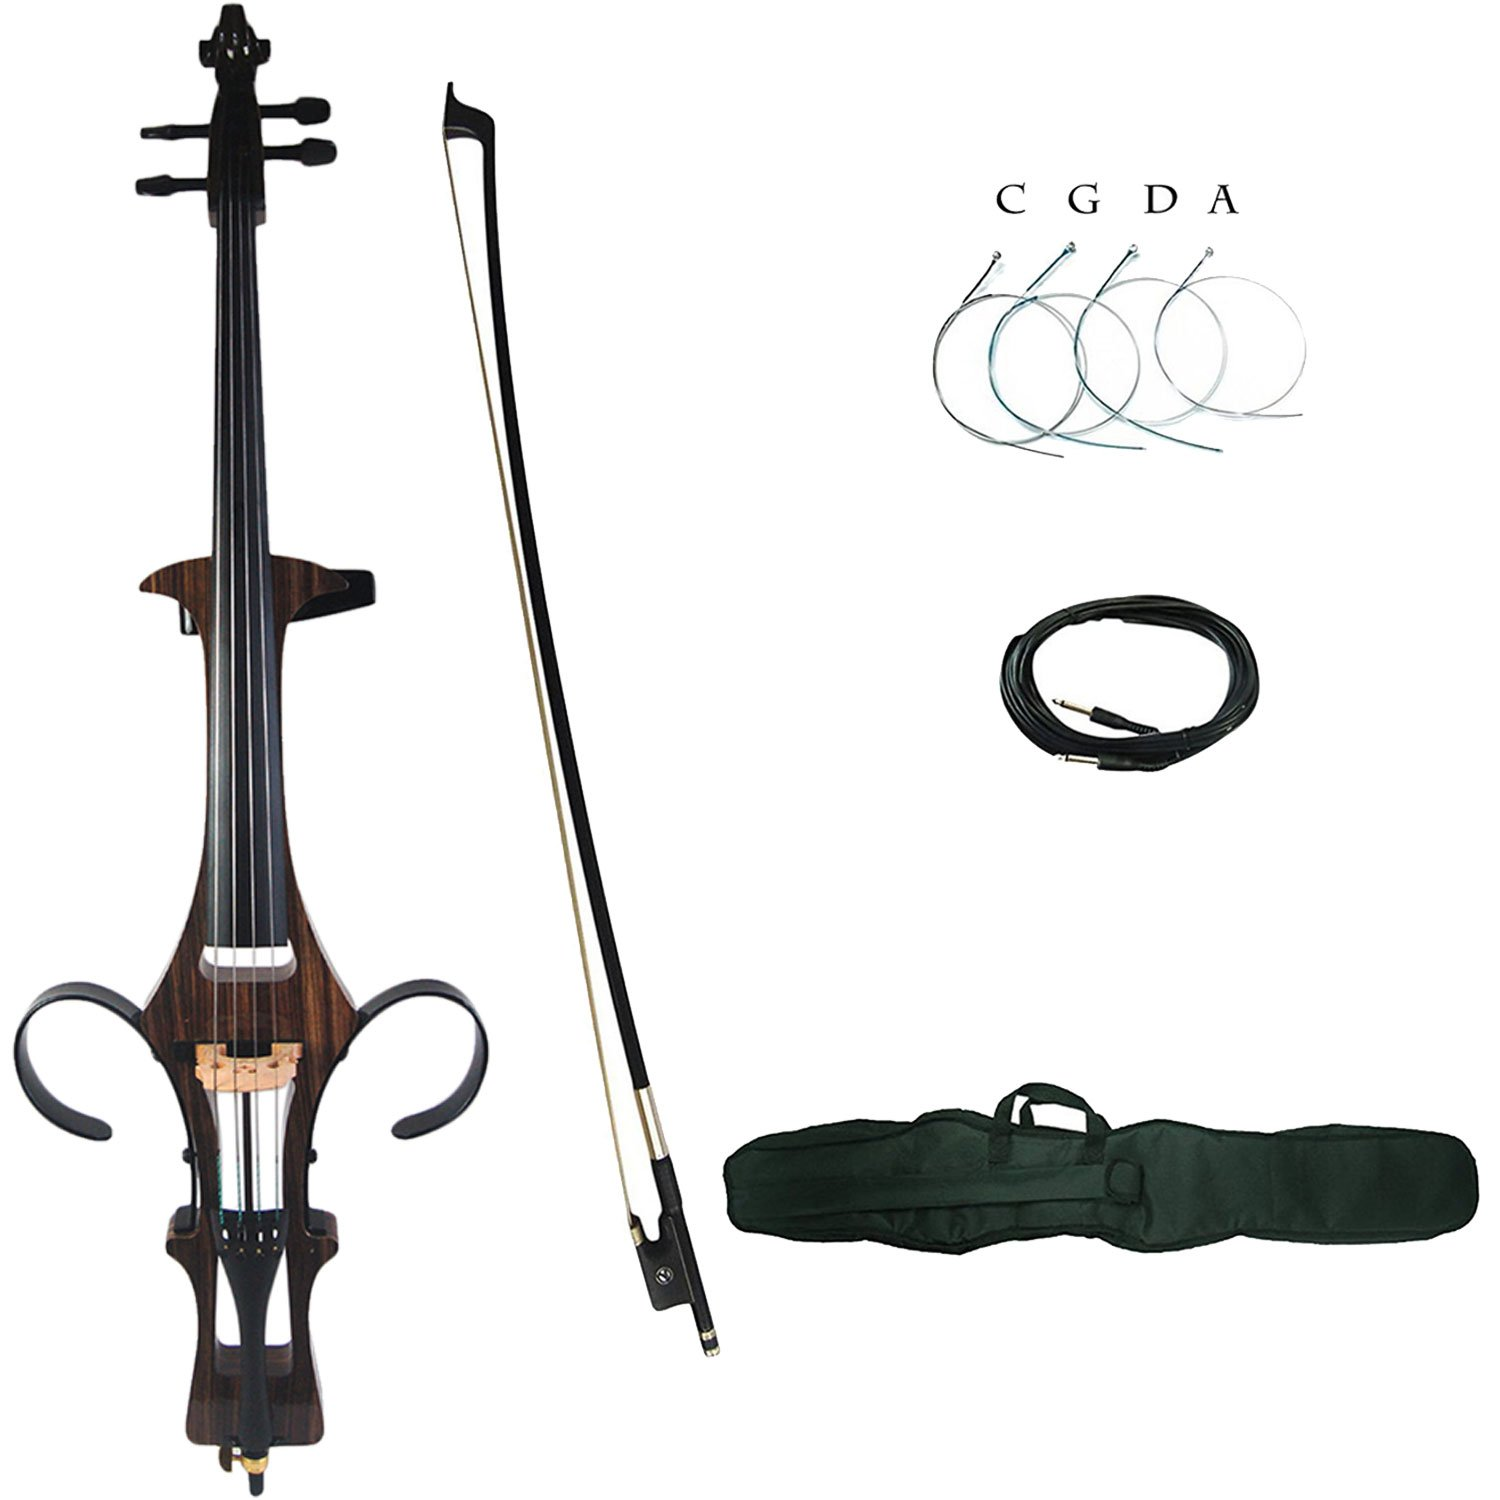 Aliyes Professional Handmade Solid Wood Electric Cello 4/4 Full Size Silent Electric Cello With bow, Case,Bridge Strings-1807